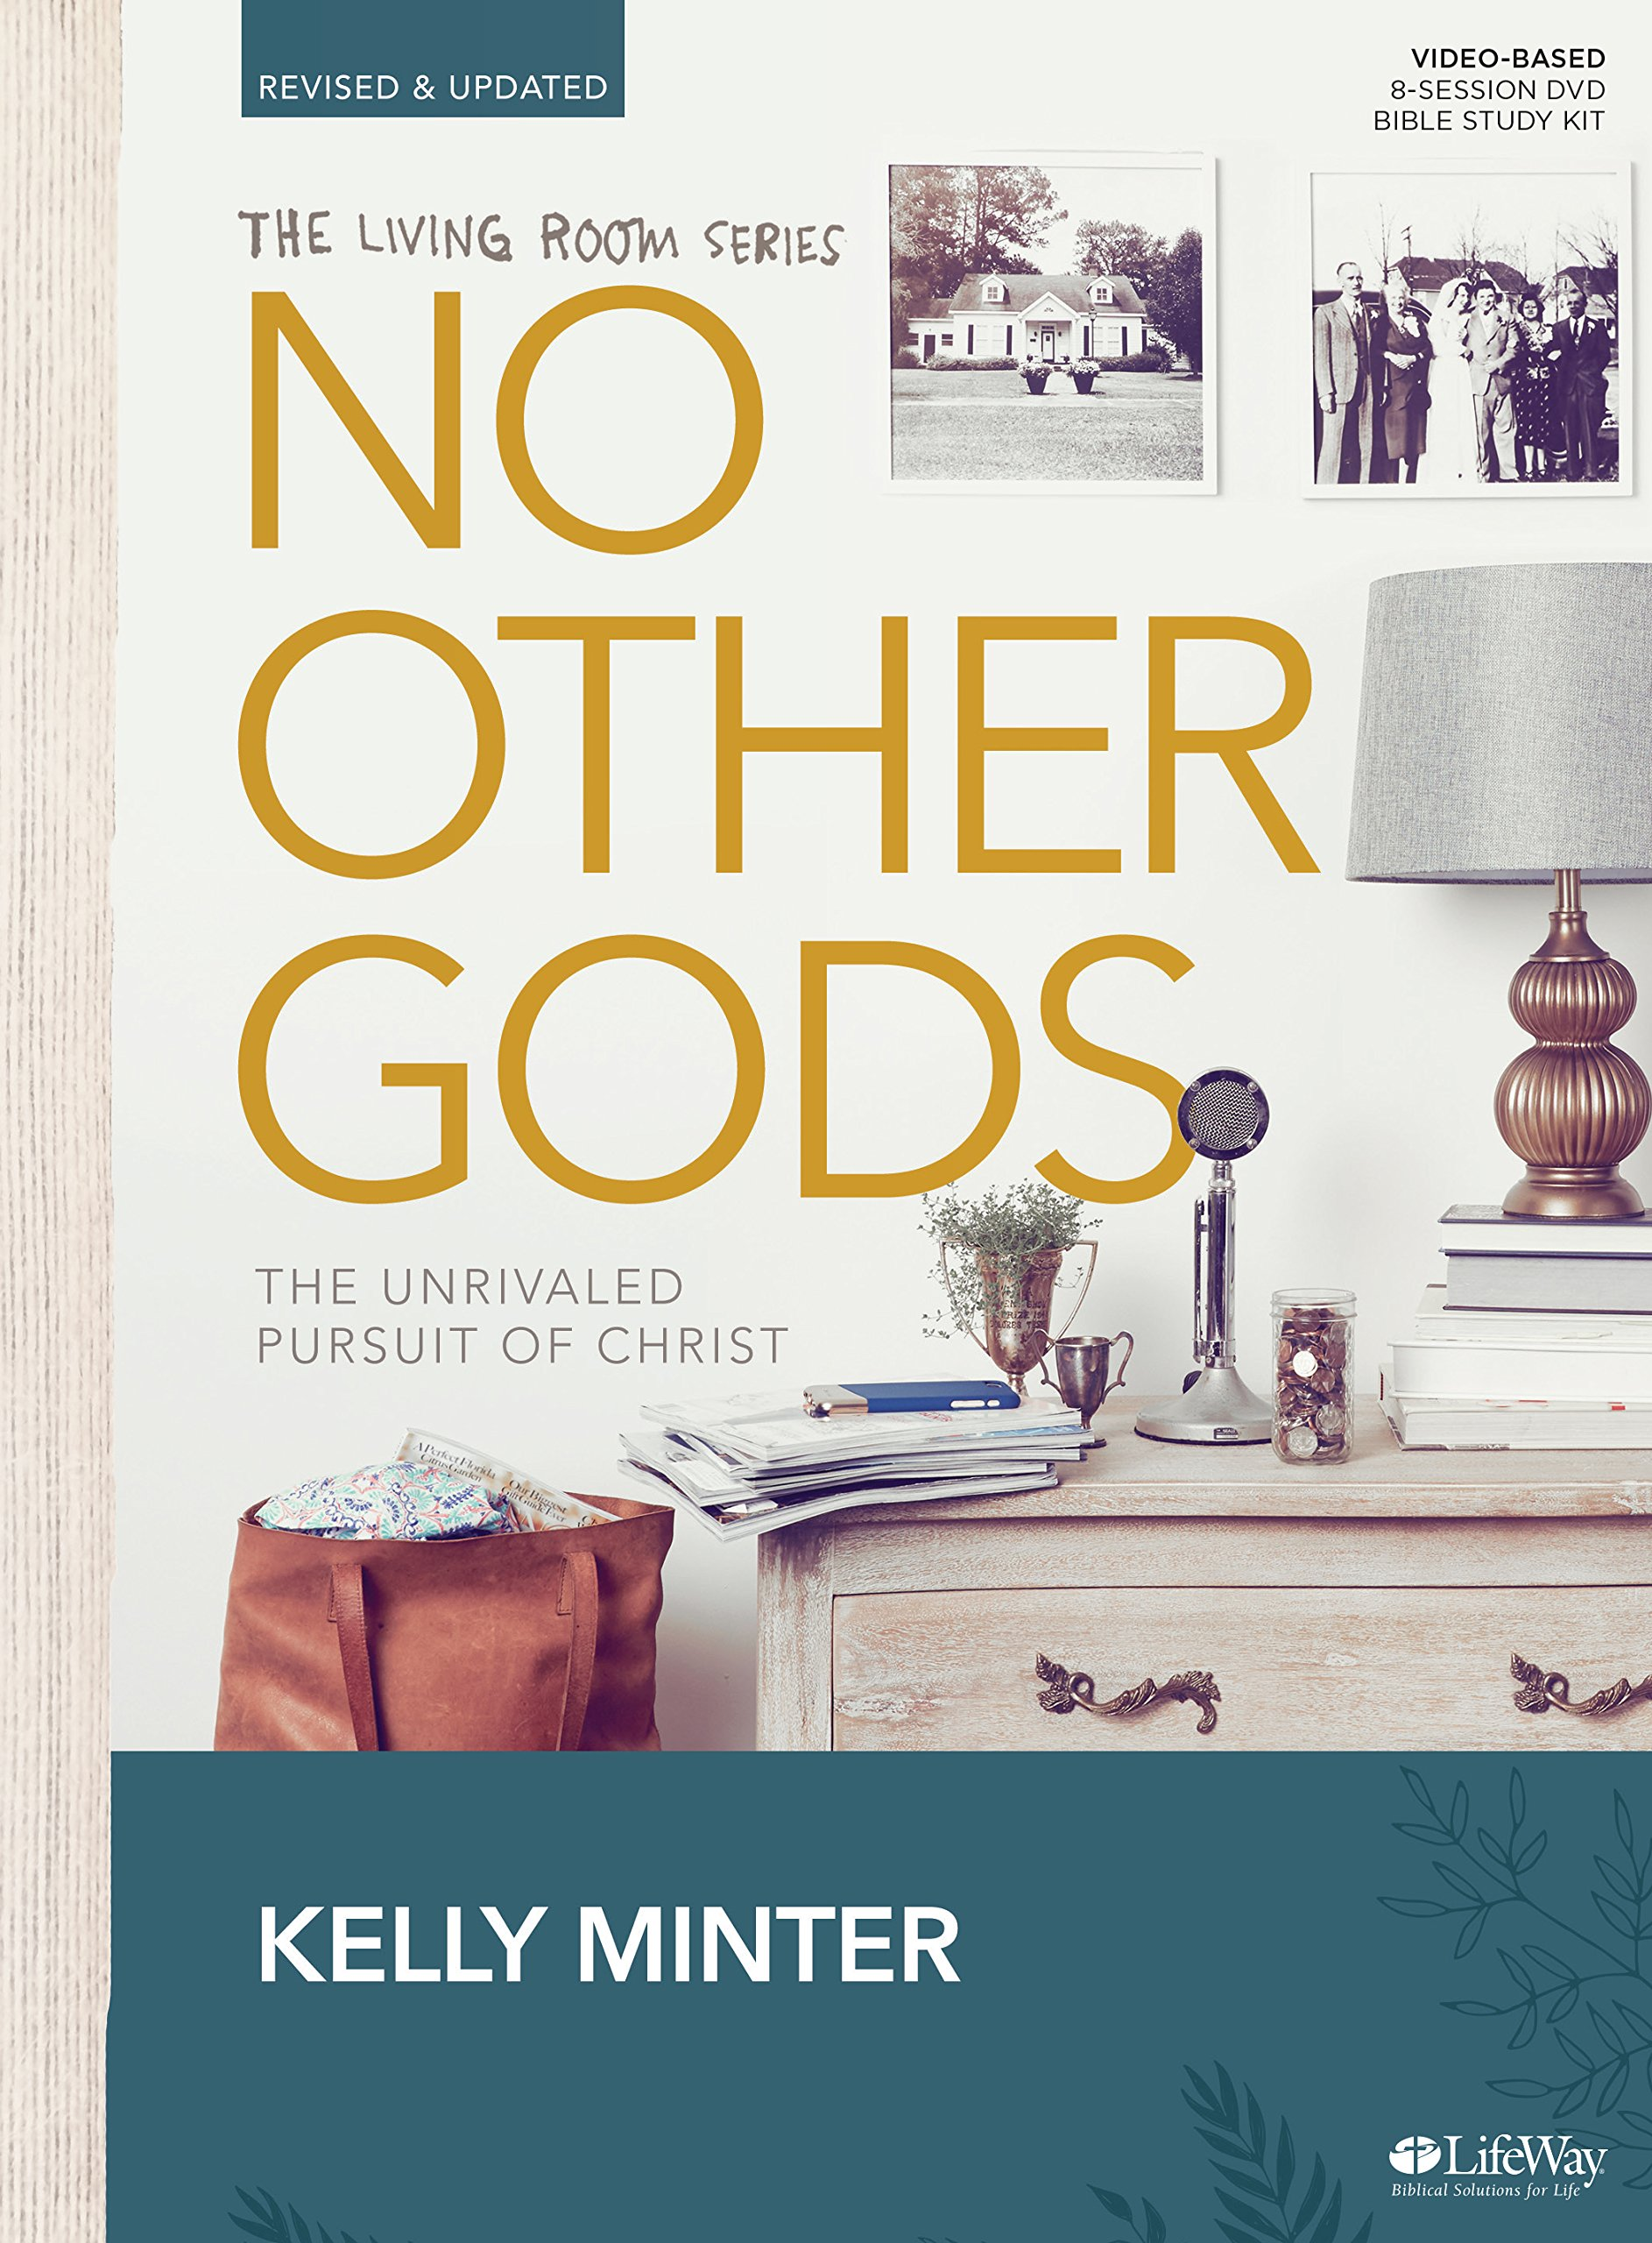 No Other Gods - Revised & Updated - Bible Study Book: The Unrivaled ...